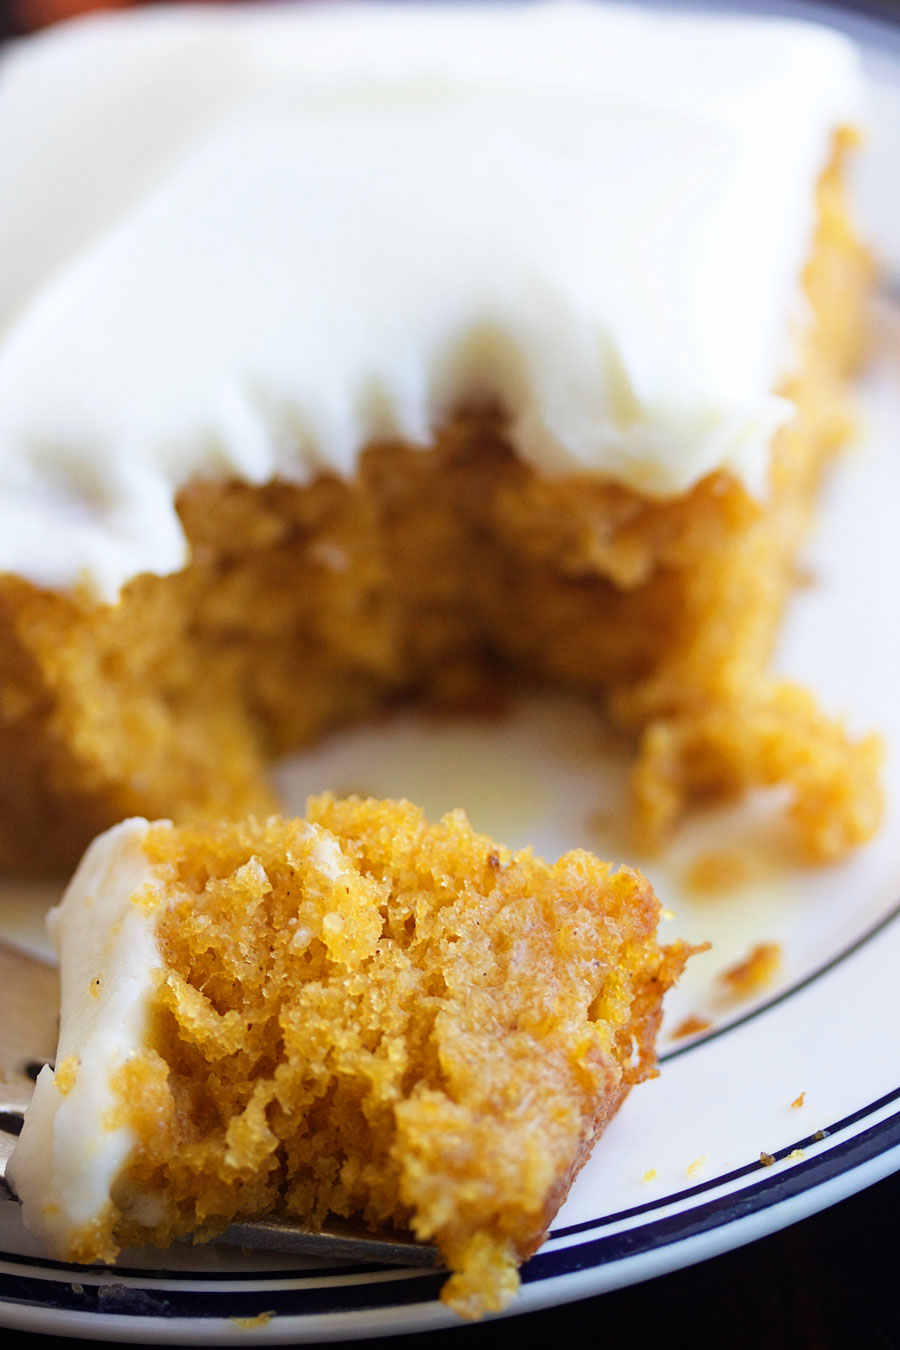 up close shot of a piece of pumpkin poke cake with cream cheese frosting